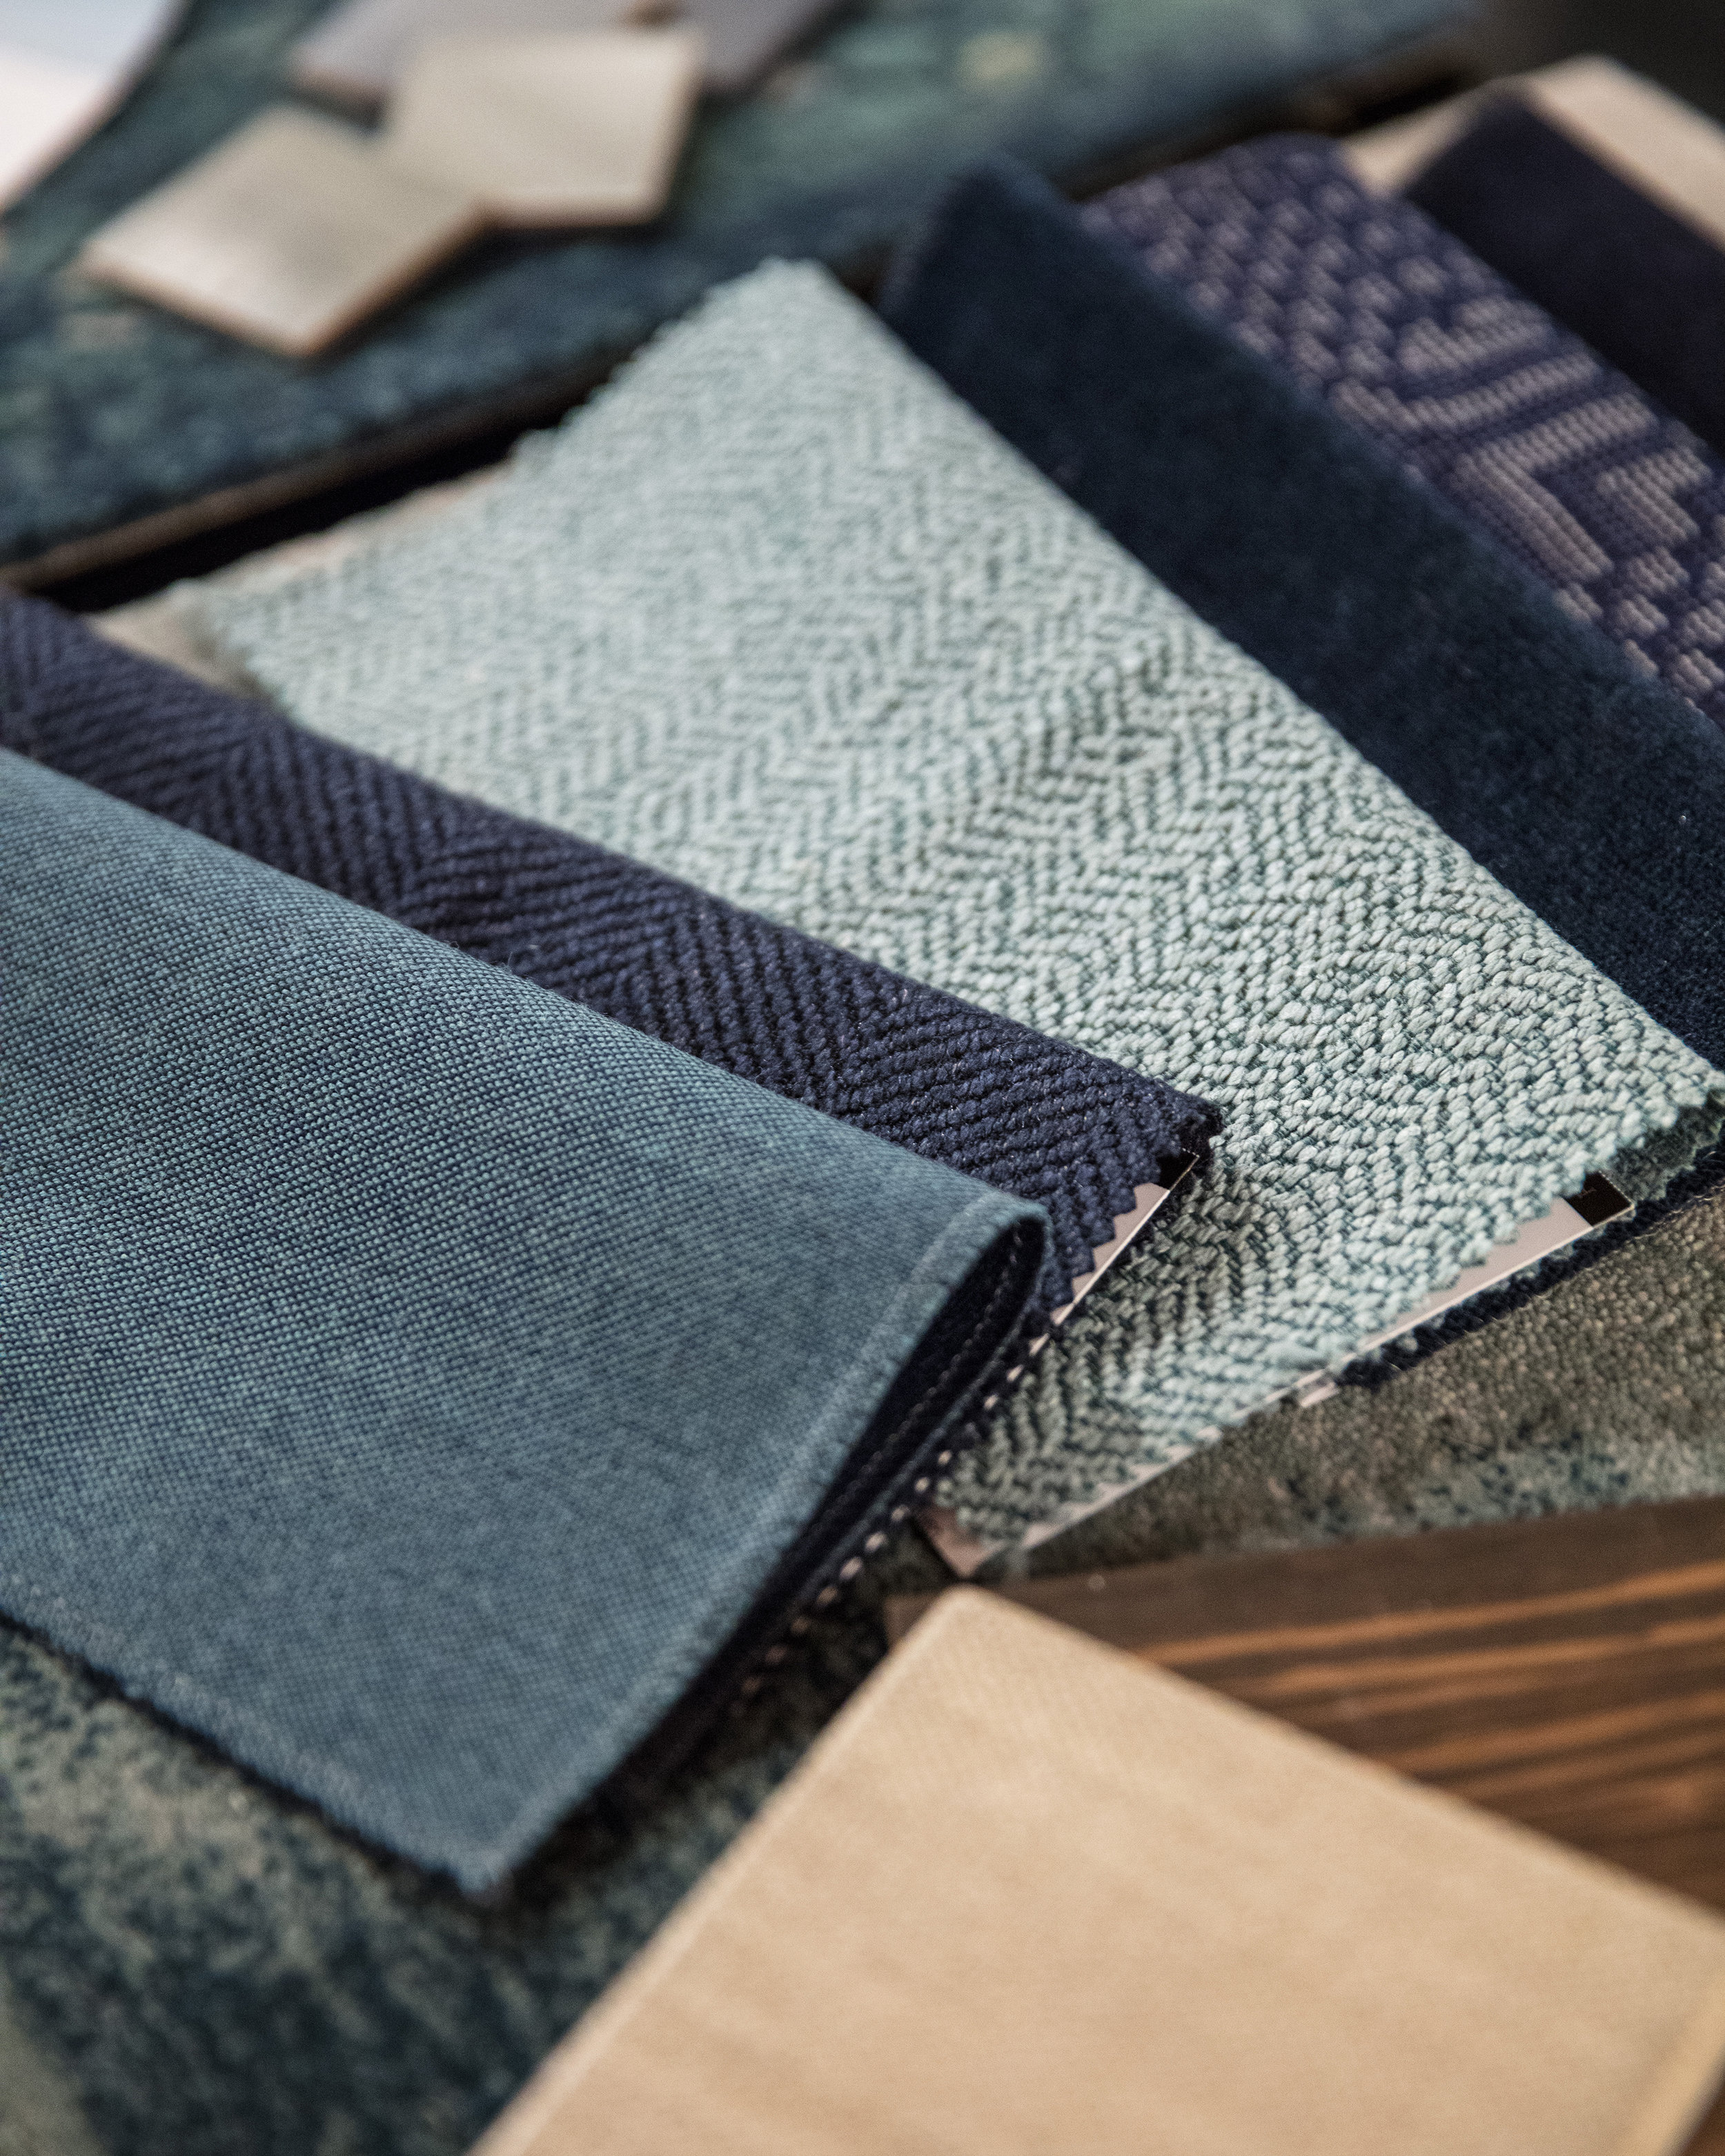 Form + Field Interior Design Fabric Samples